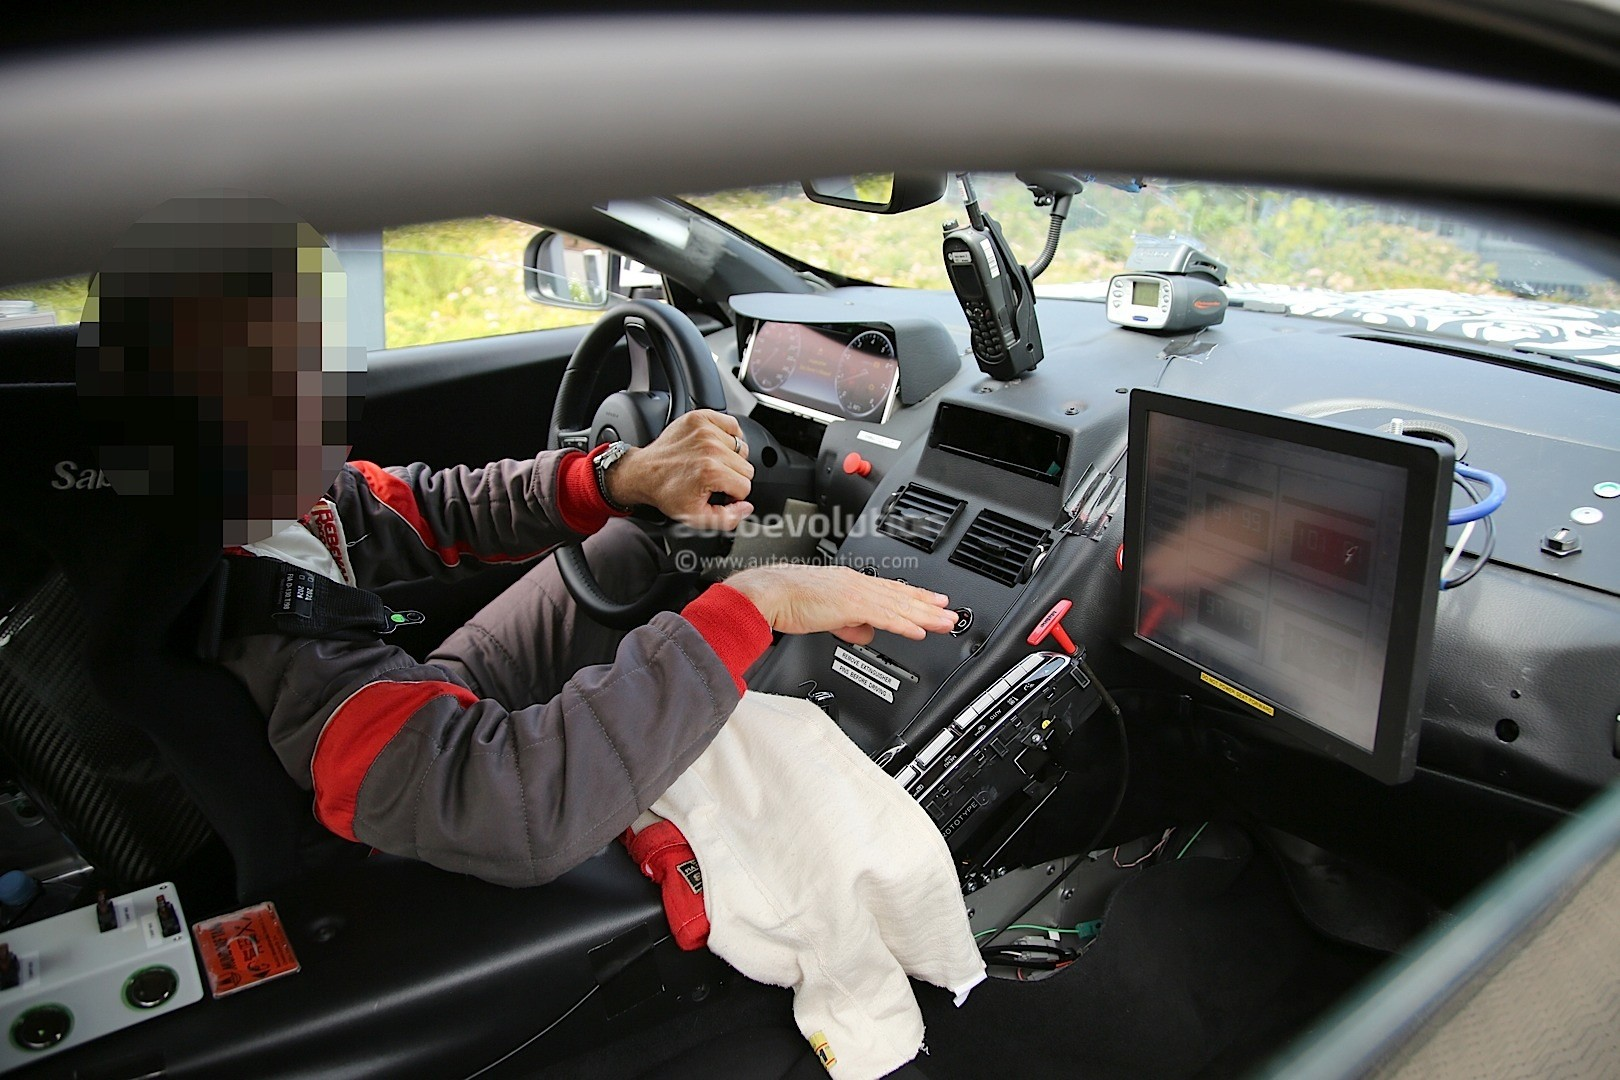 2017 aston martin db11 interior spied, shows mercedes components